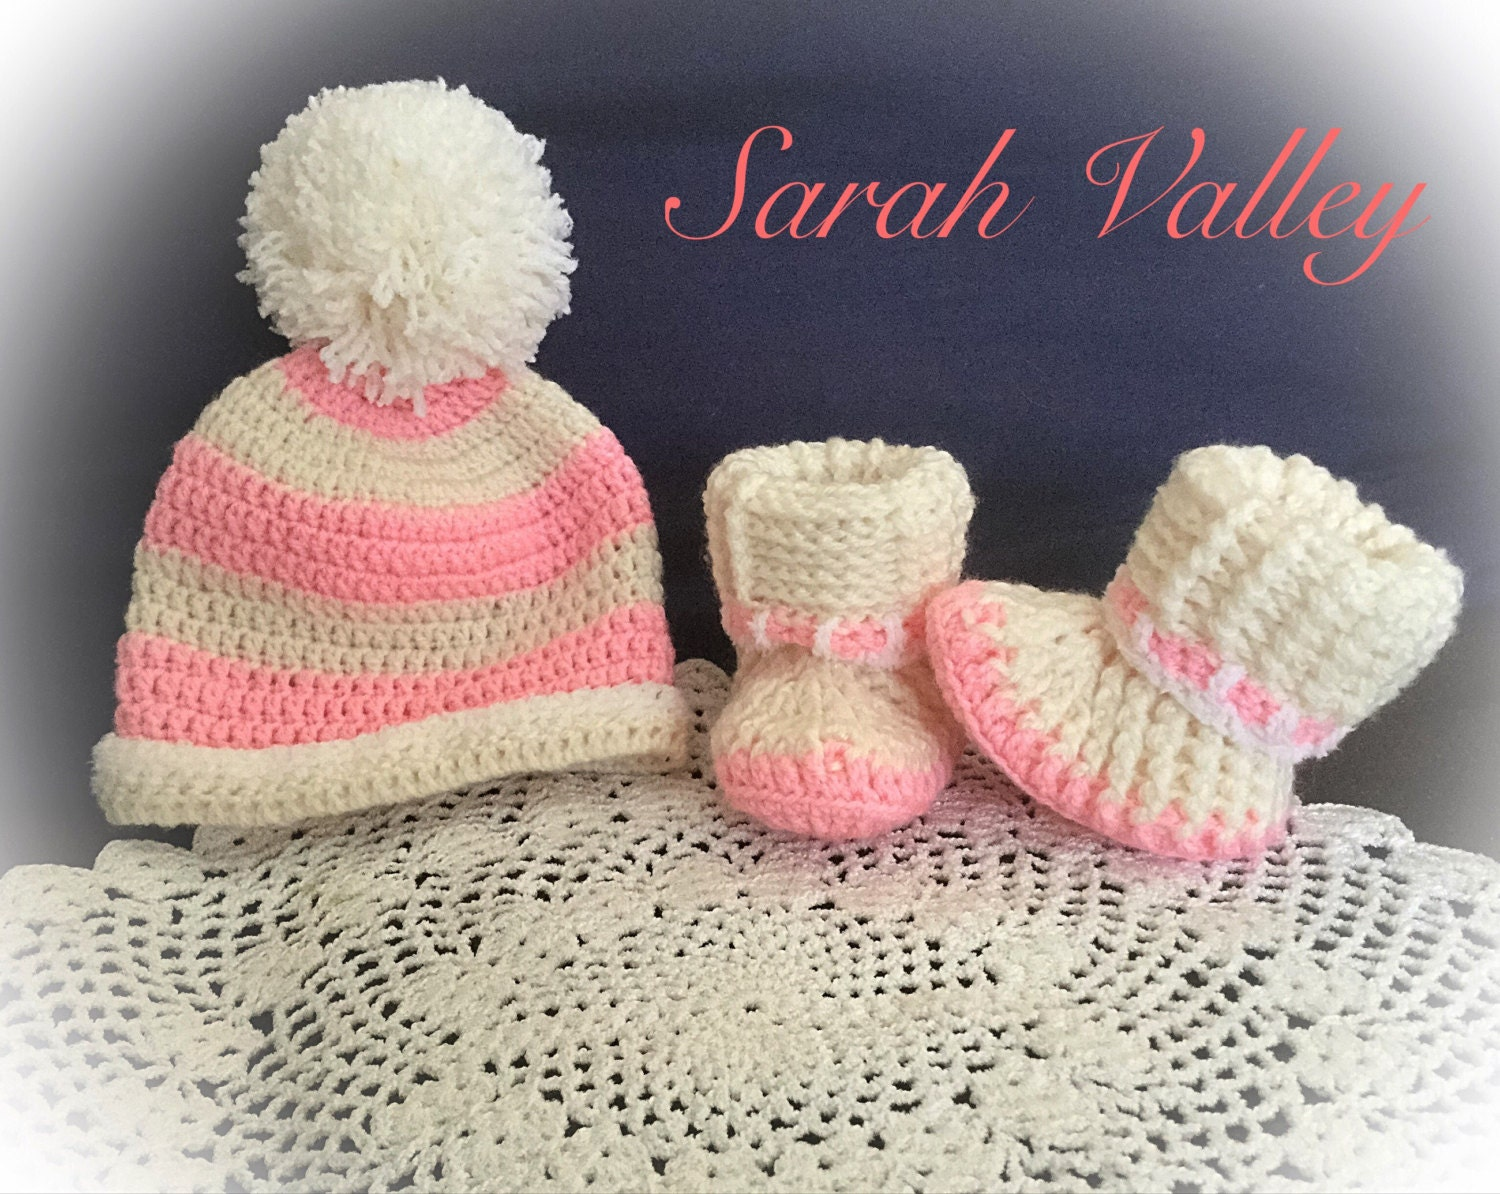 Baby girl gift, newborn baby gift, baby girl, baby shoes, knit baby clothes, snug babywear, knit baby wear, baby bootees, baby wear